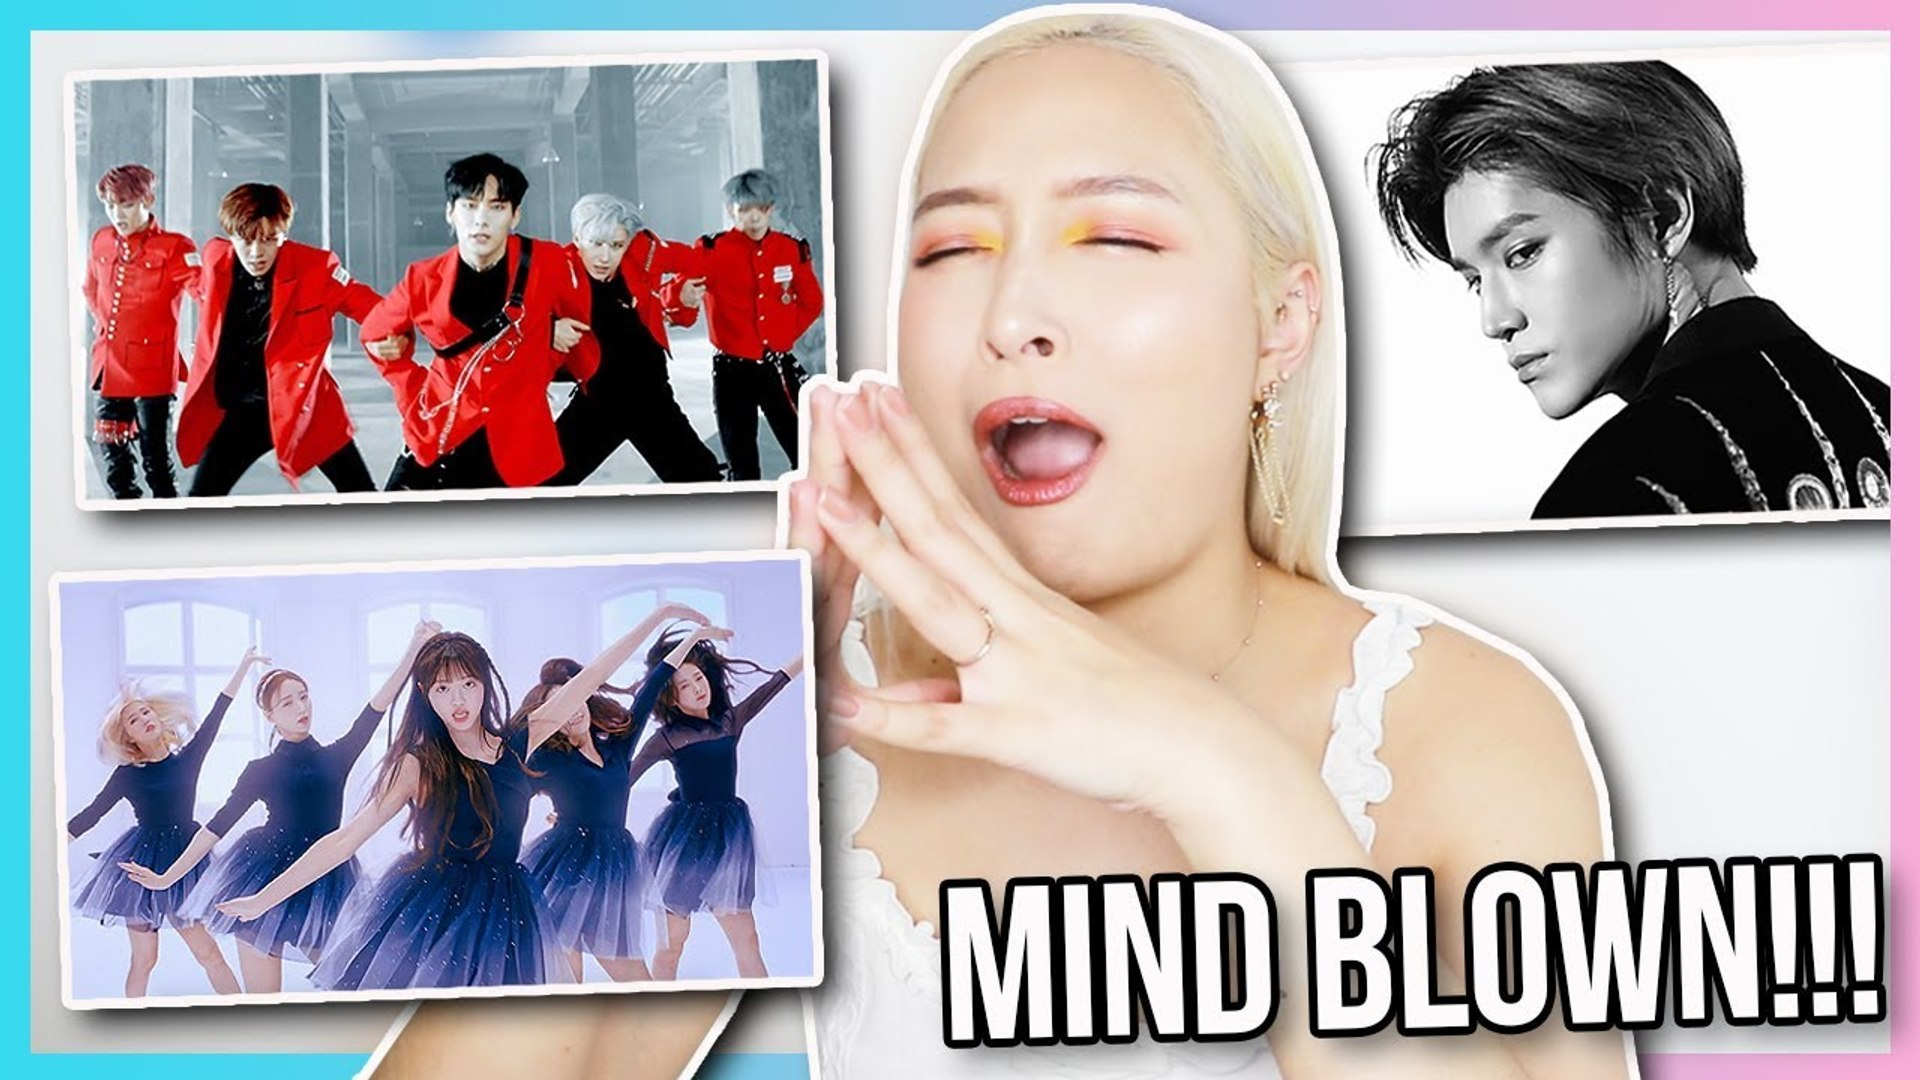 Nct127 Oh My Girl And Ace Mv Reaction Catching Up On Kpop